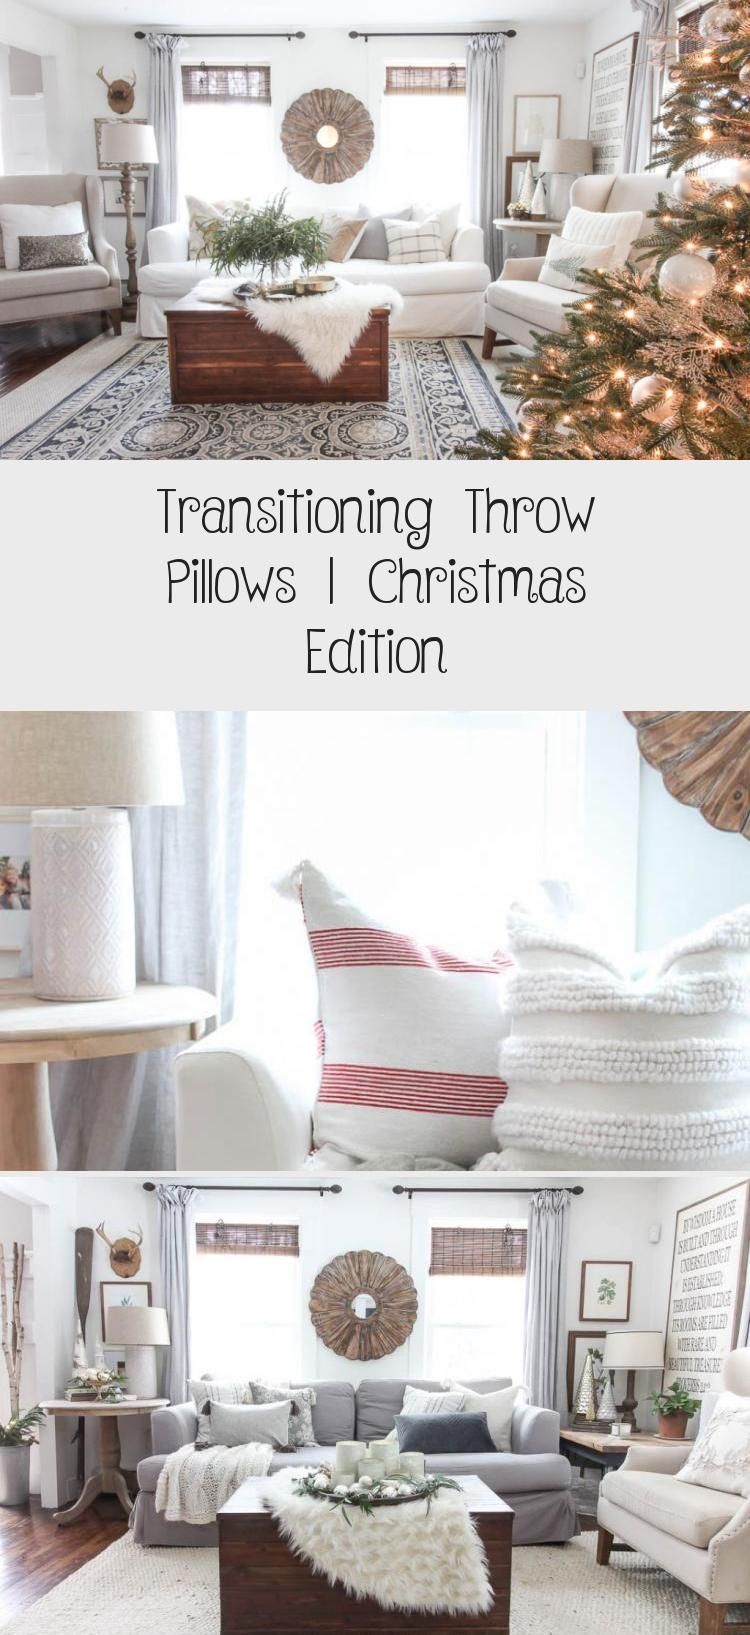 Transitioning Throw Pillows | Christmas Edition - Home Accesories Transitioning Throw Pillows | Christmas Edition | Cozy winter decor and neutral throw pillows. #christmasdecor #christmastime #throwpillows #throwpillowOnBed   #Throw #Pillows #| #Christmas #Edition